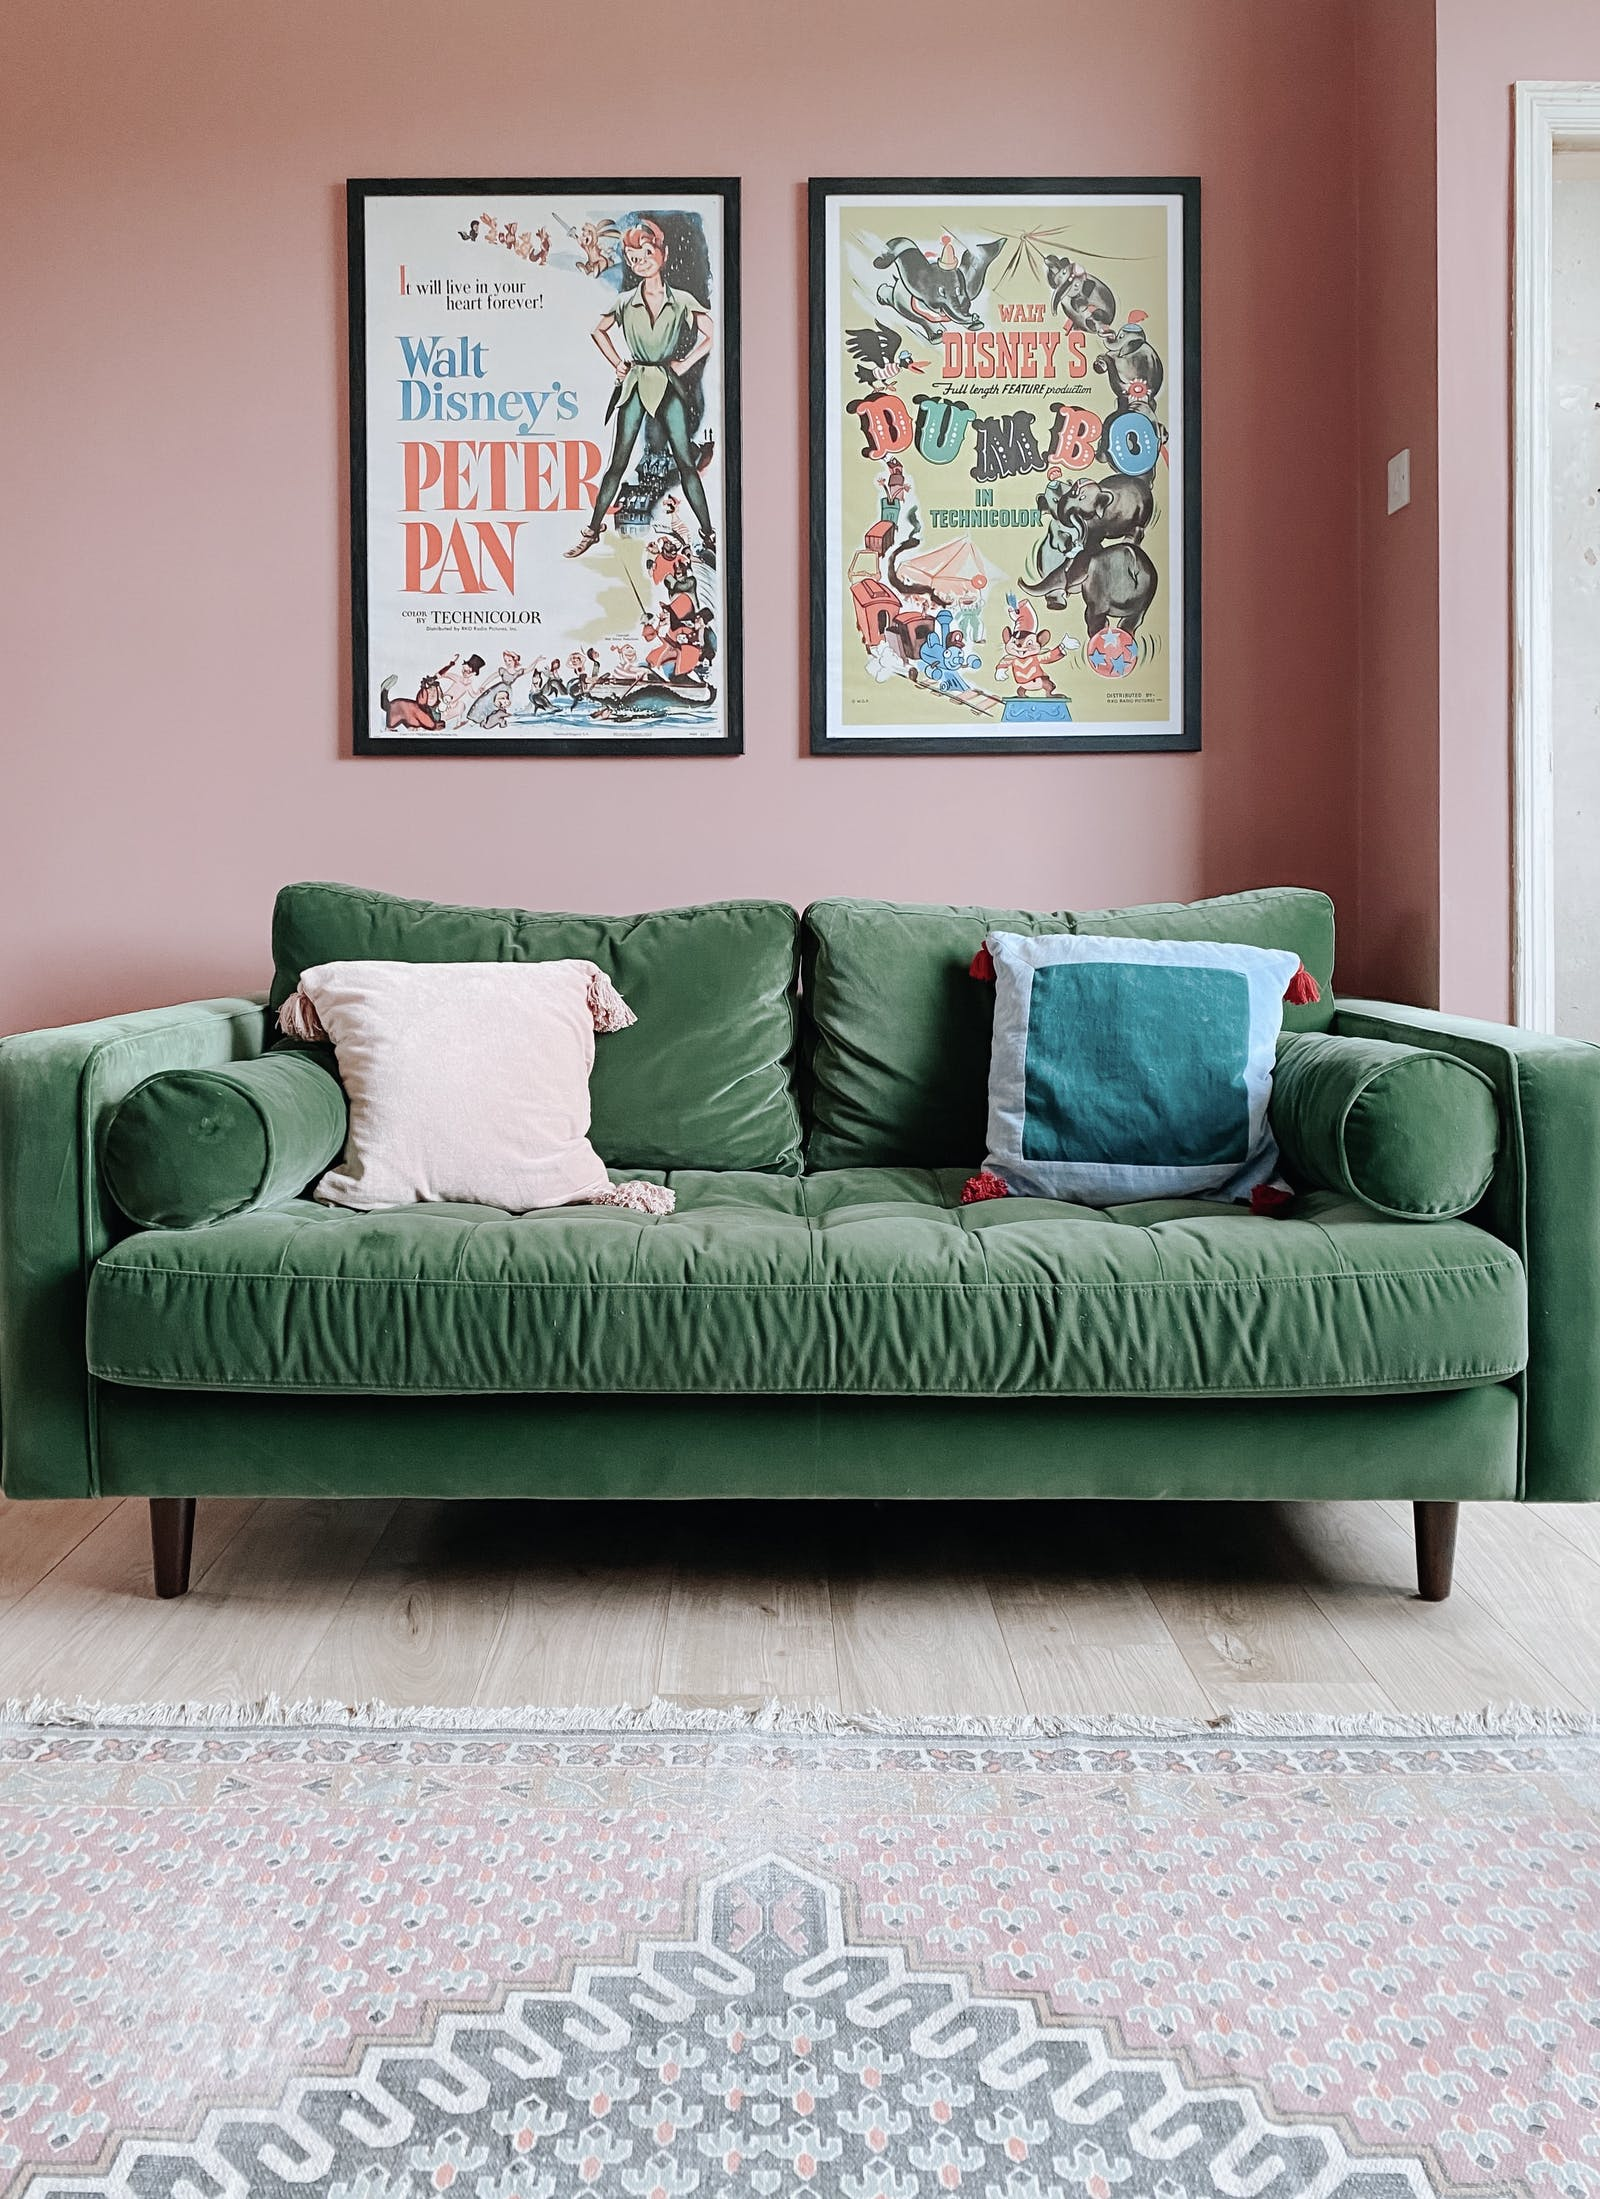 Green velvet three-seater sofa on wooden floor against a bubblegum pink wall with Disney posters